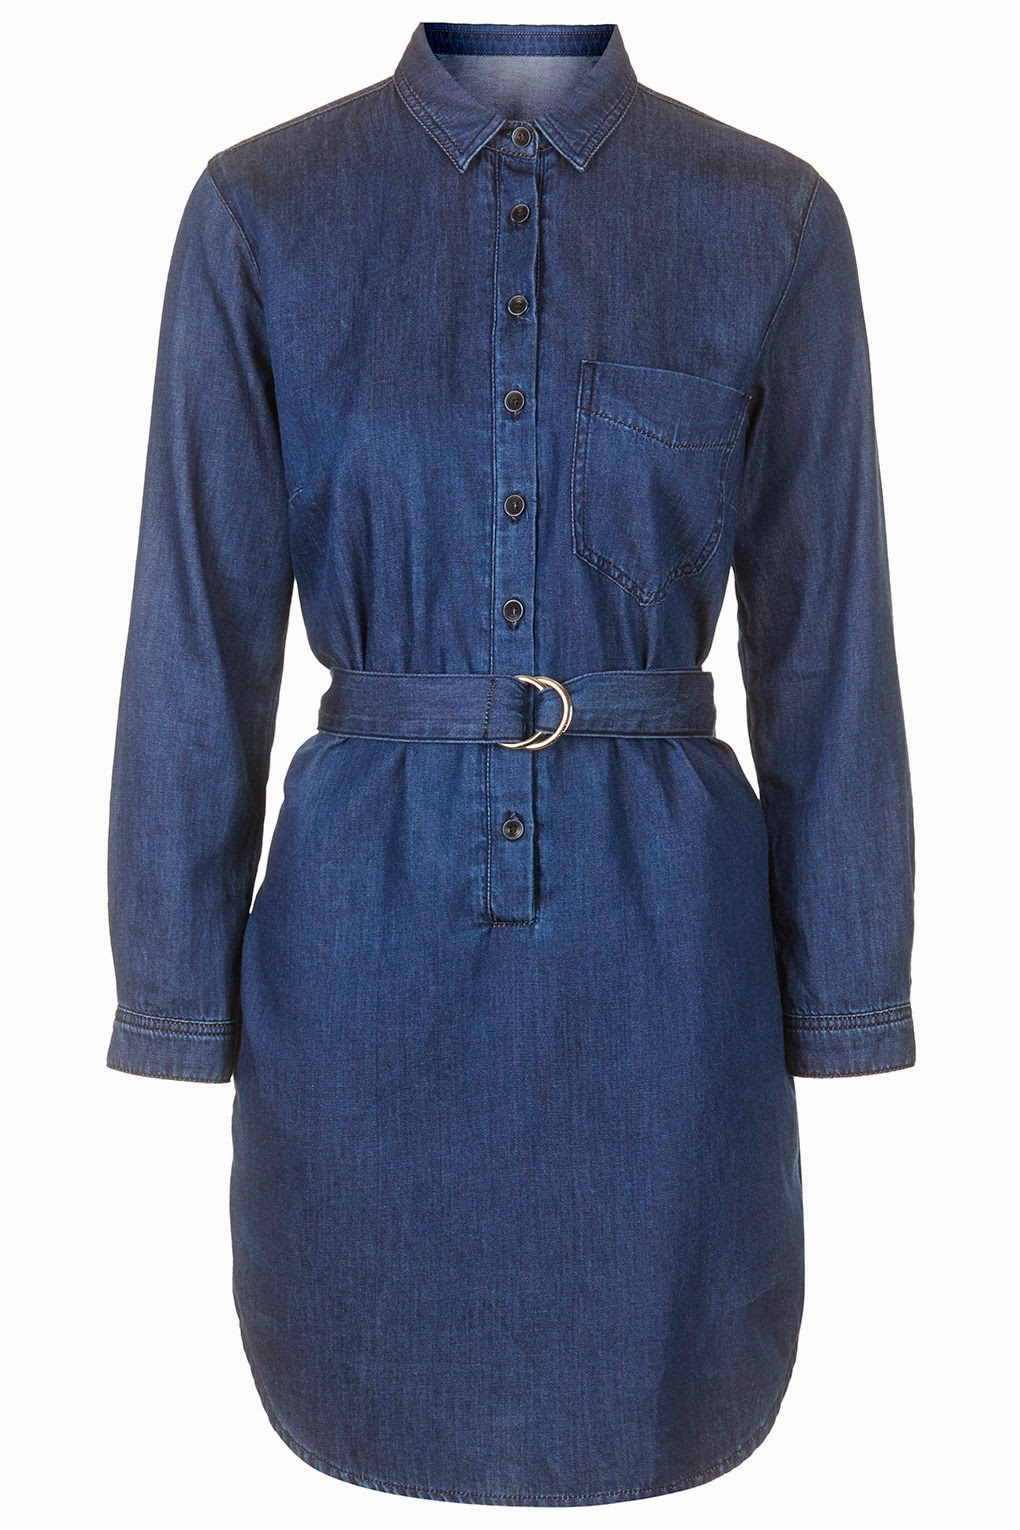 topshop denim dress, denim dress with belt,